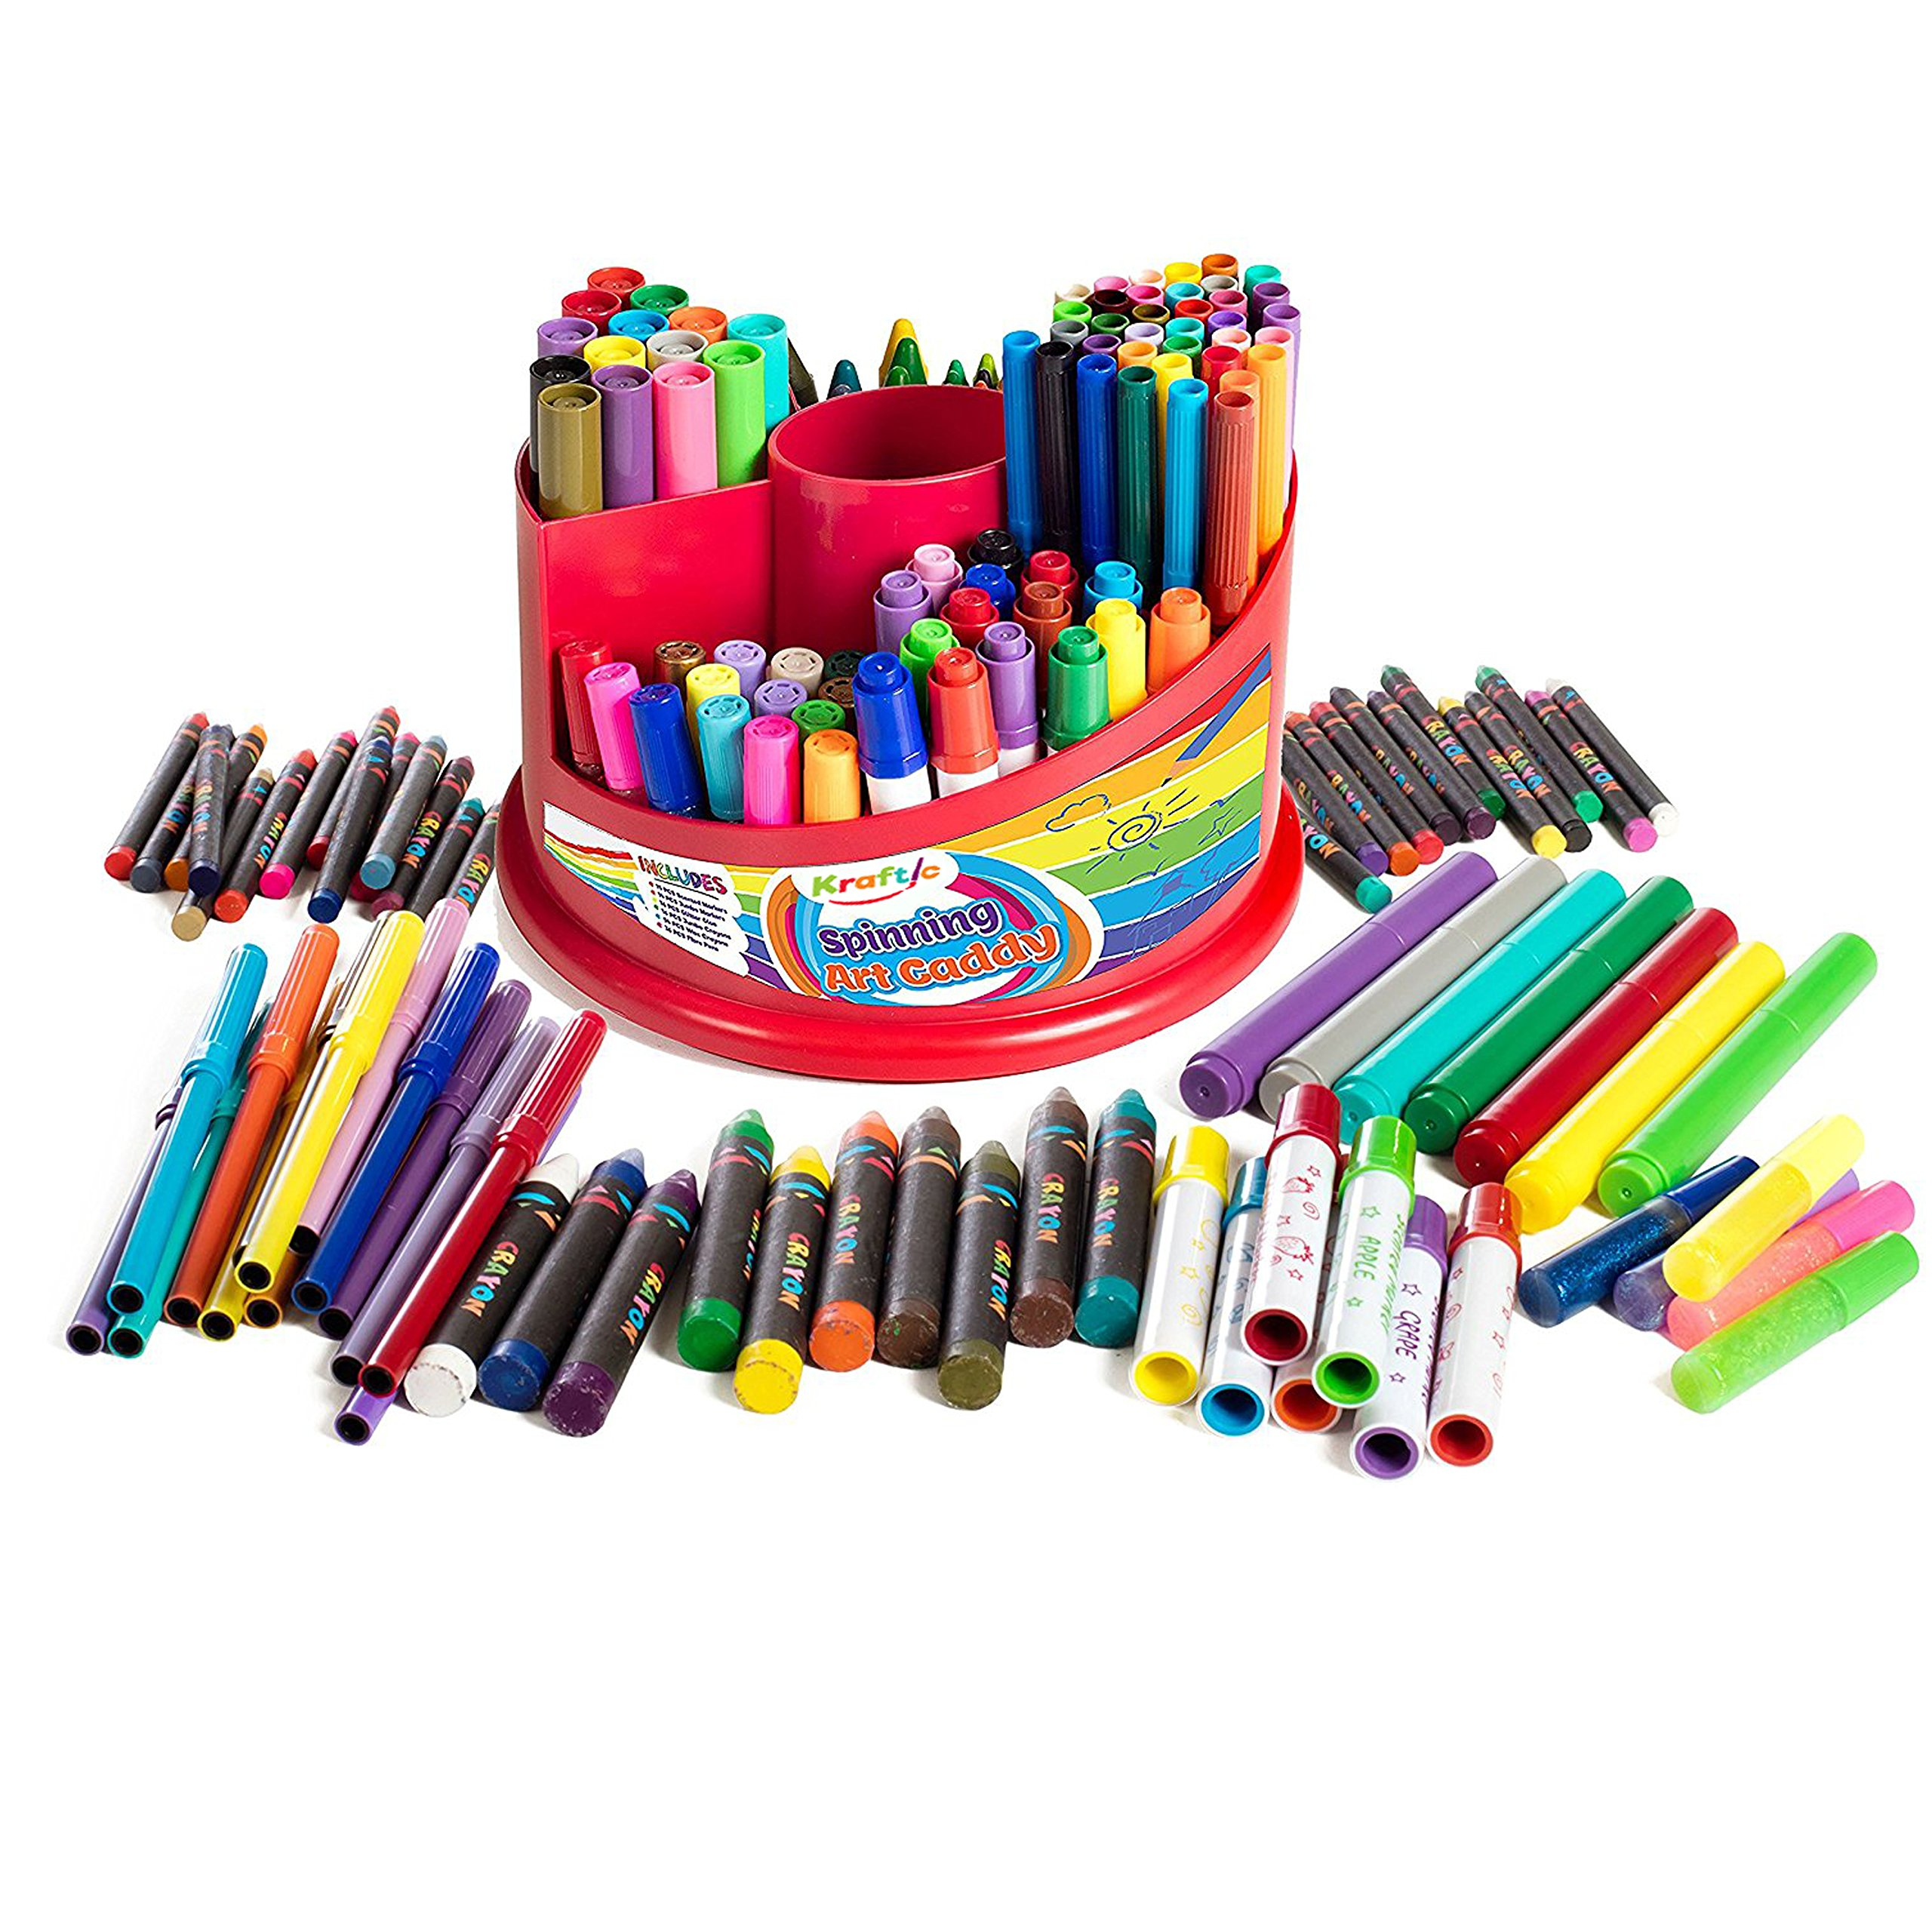 All In 1 Spinning Art Caddy with Set of Crayons, WASHABLE Markers, Scented Markers and Glitter Glue, 151 Piece Set by Kraftic (Image #1)